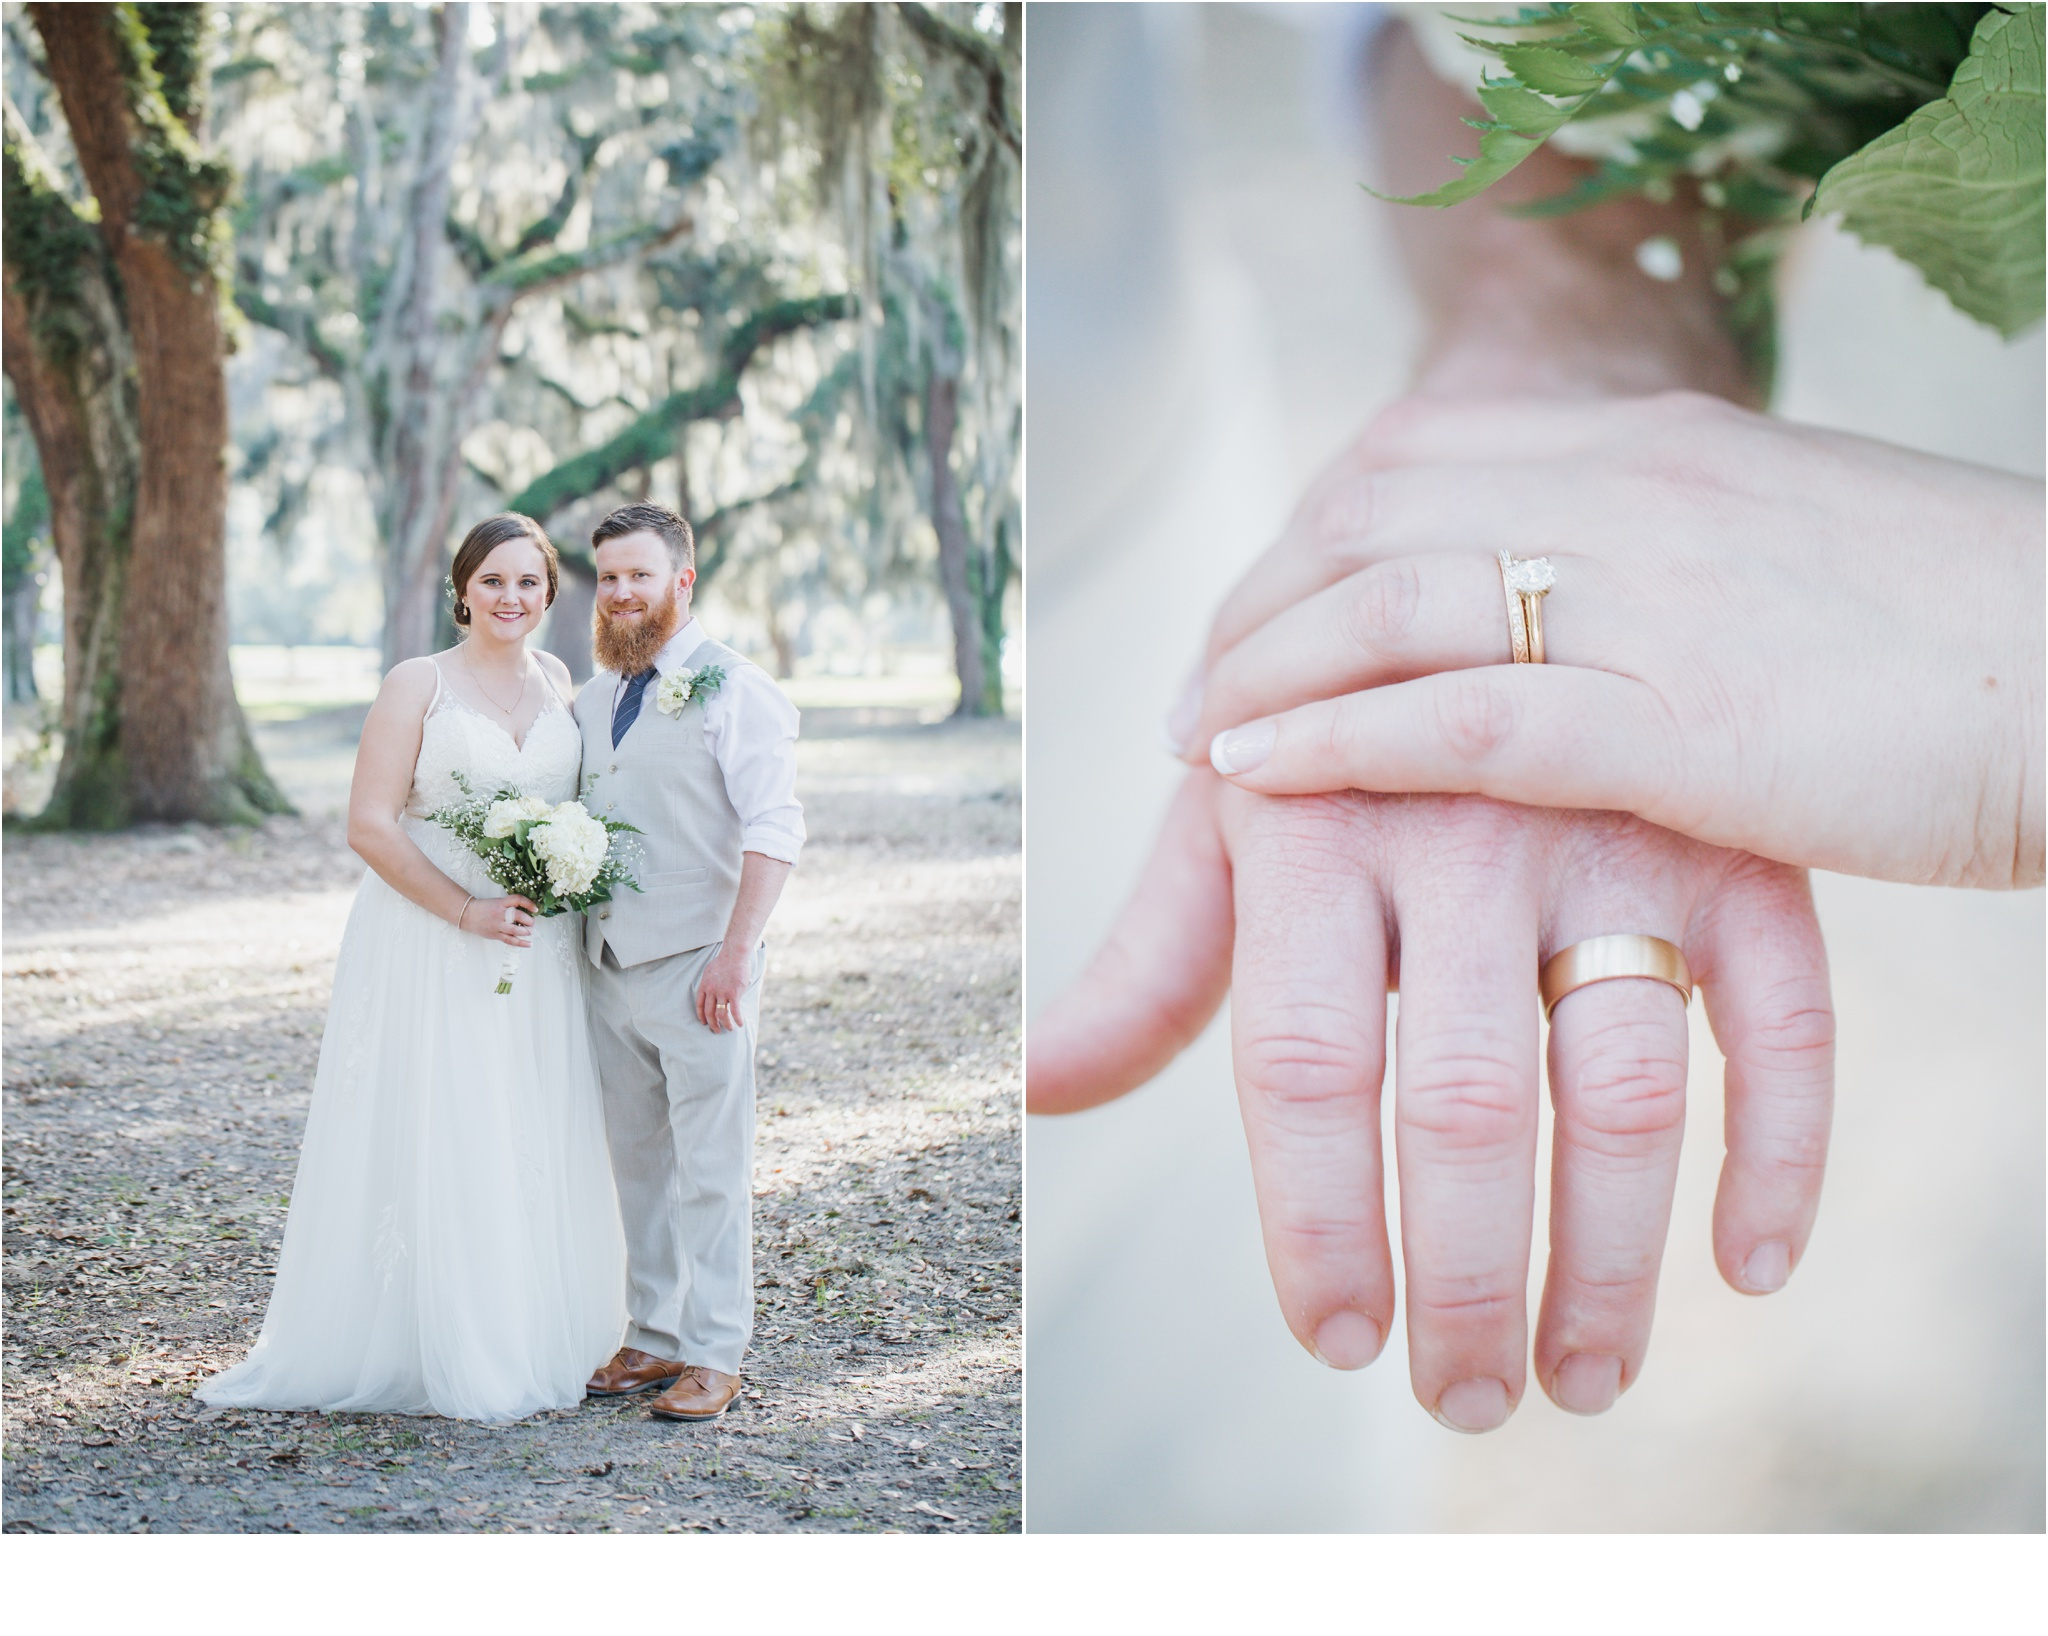 Rainey_Gregg_Photography_St._Simons_Island_Georgia_California_Wedding_Portrait_Photography_1722.jpg